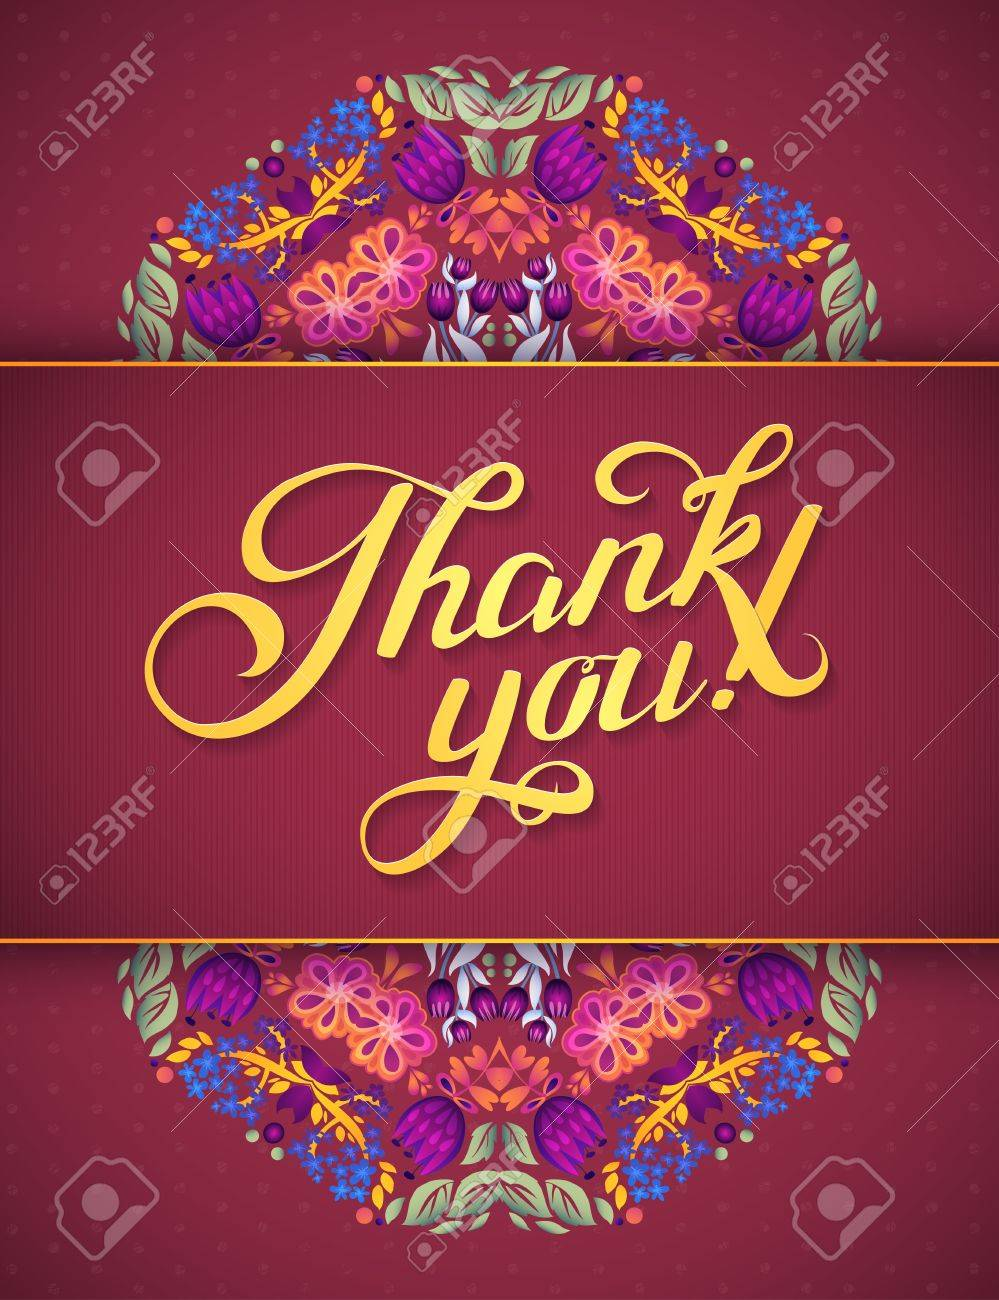 Thank You Card In Bright Colors. Stylish Floral Background With ...